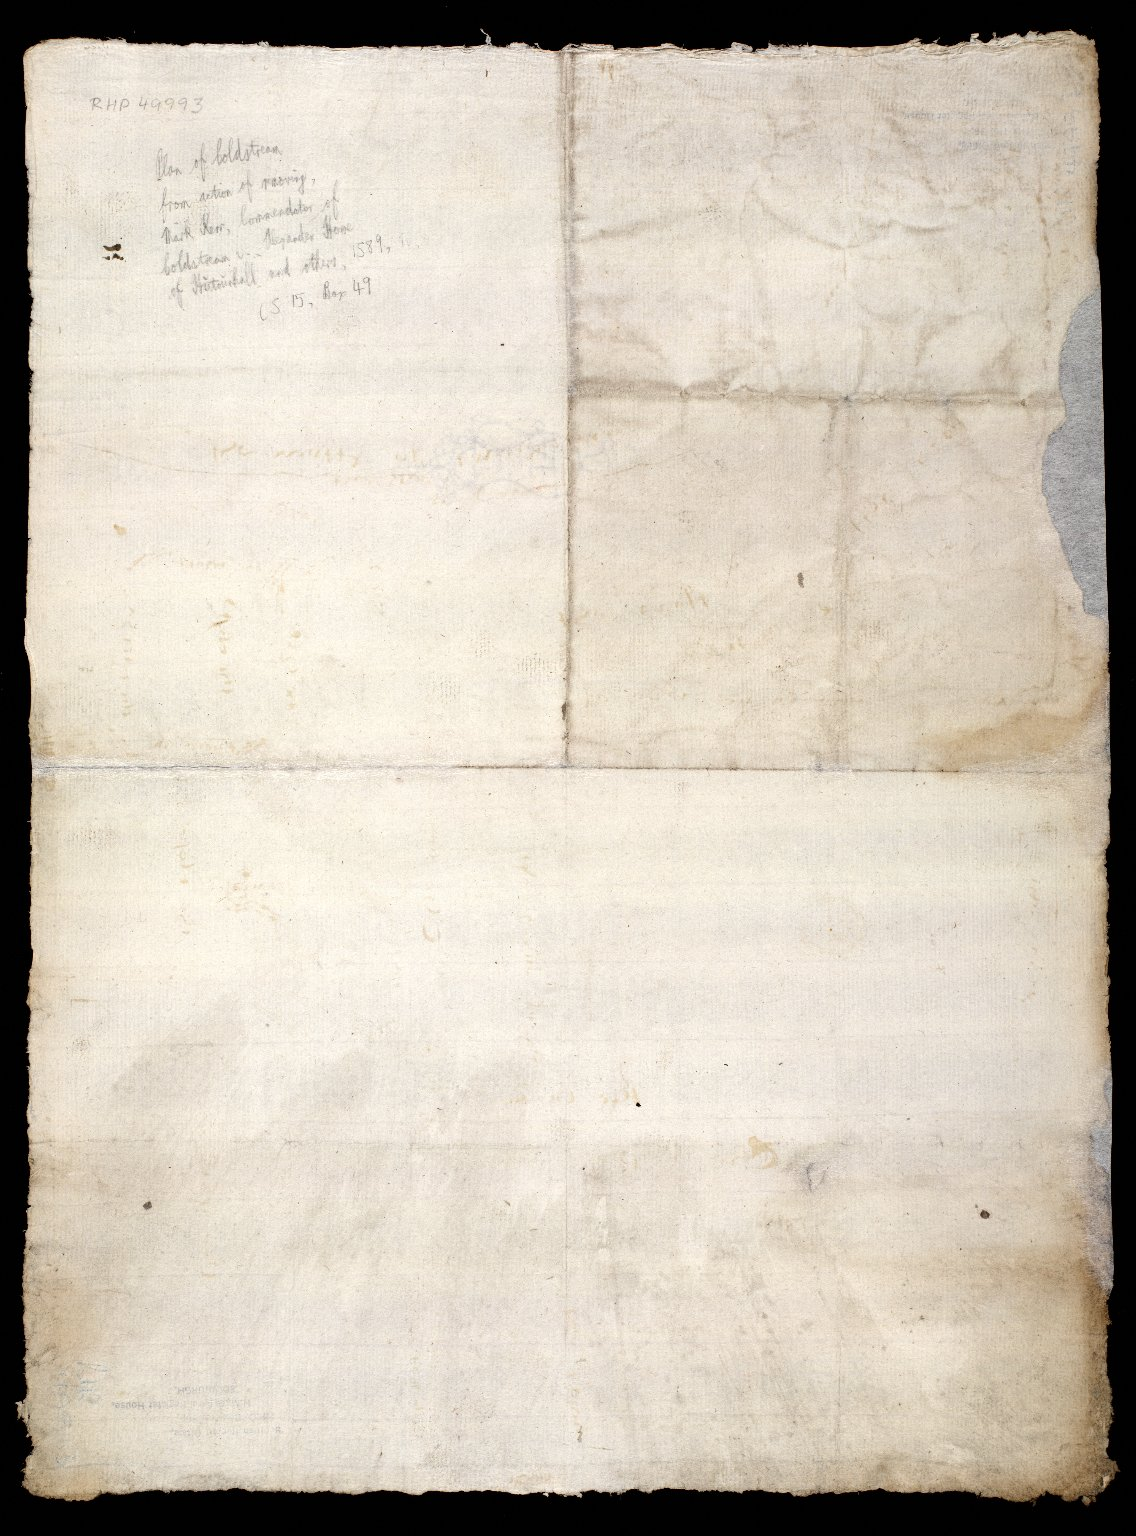 [Plan of Coldstream, from action of removing, Mark Kerr, Comendator of Coldstream, & Alexander Home of Hutounhall, and others, 1589] [2 of 2]